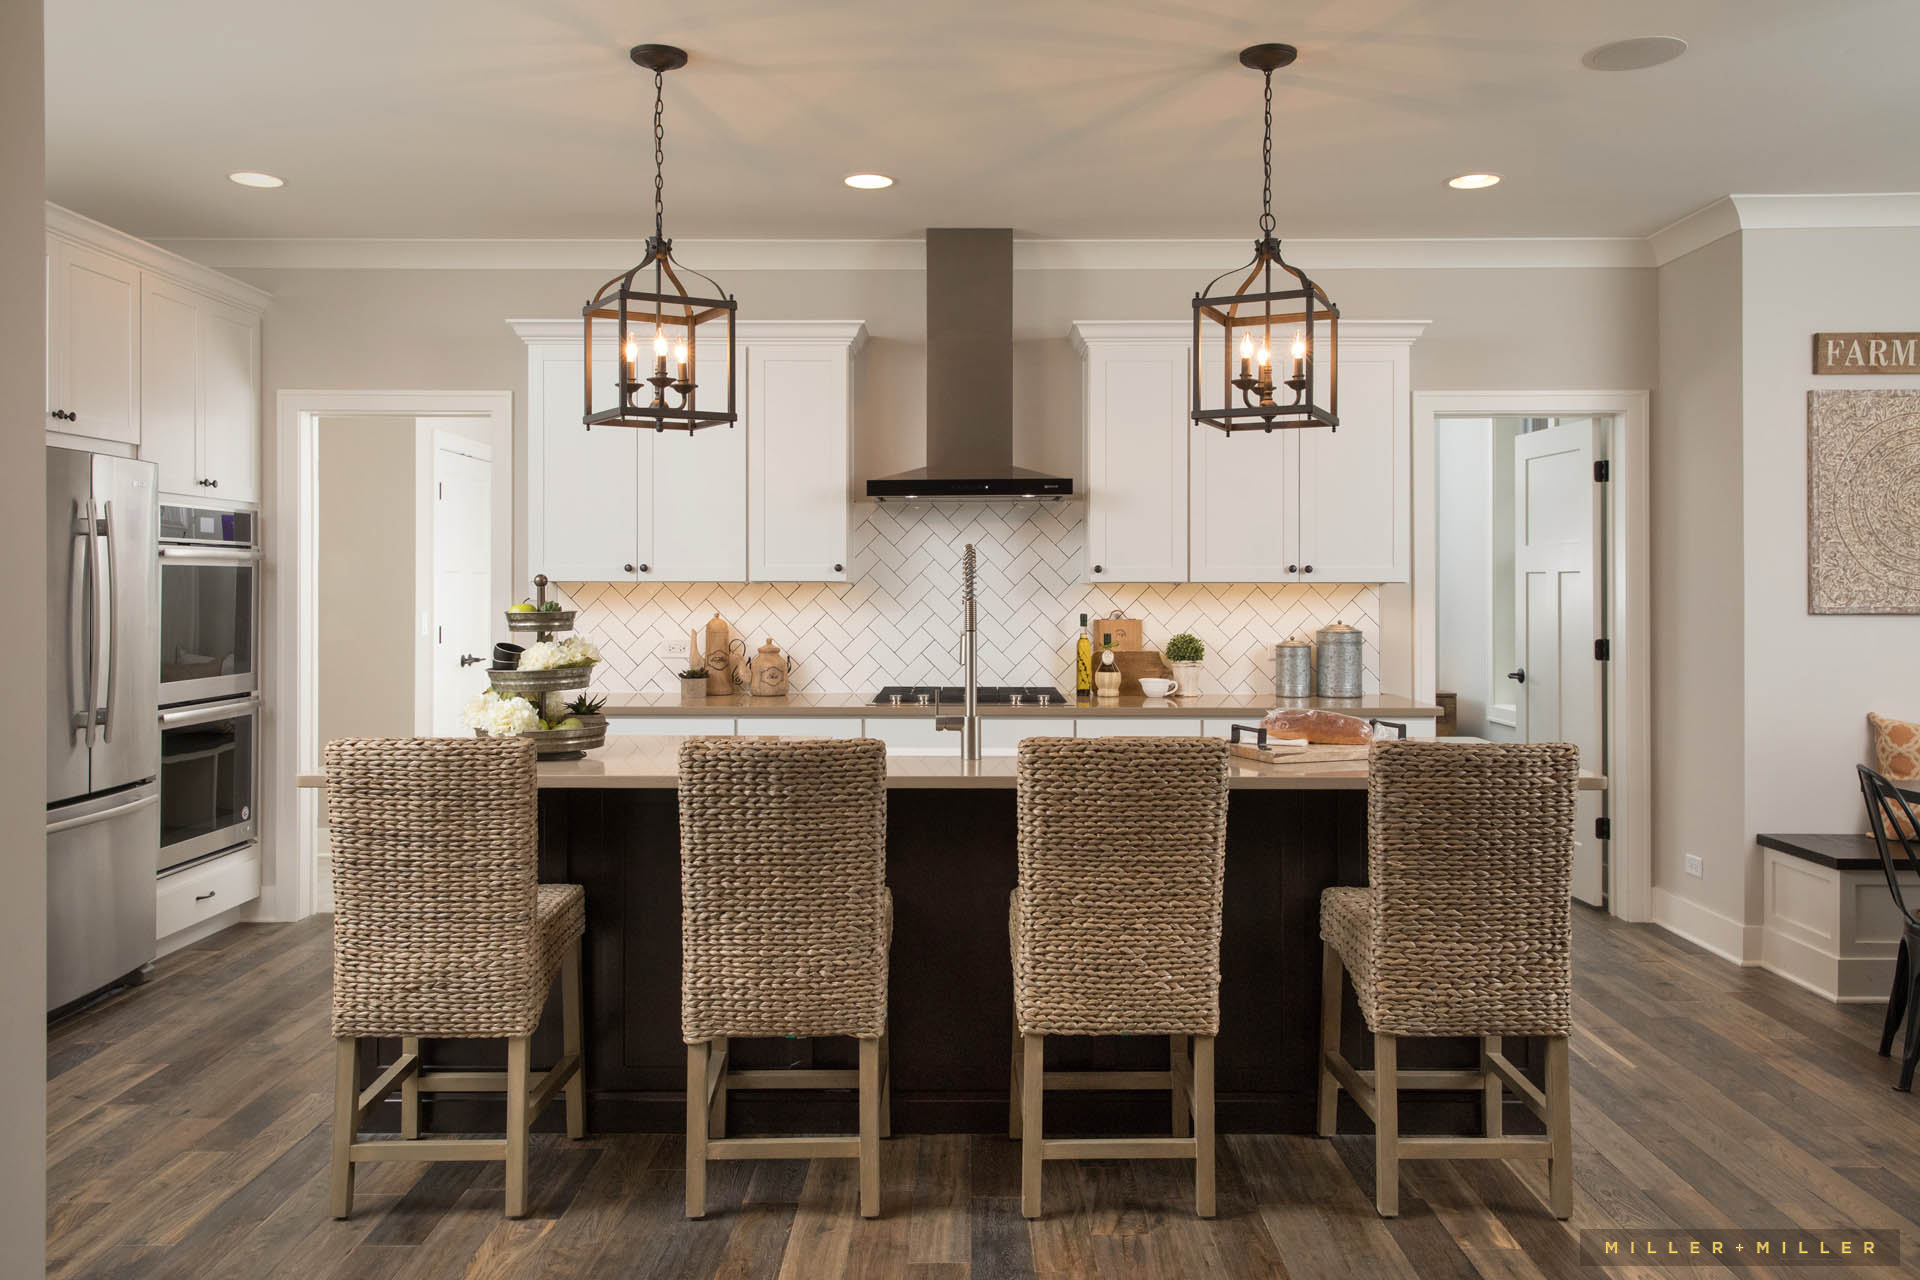 interiors-kitchens-photographer-madison